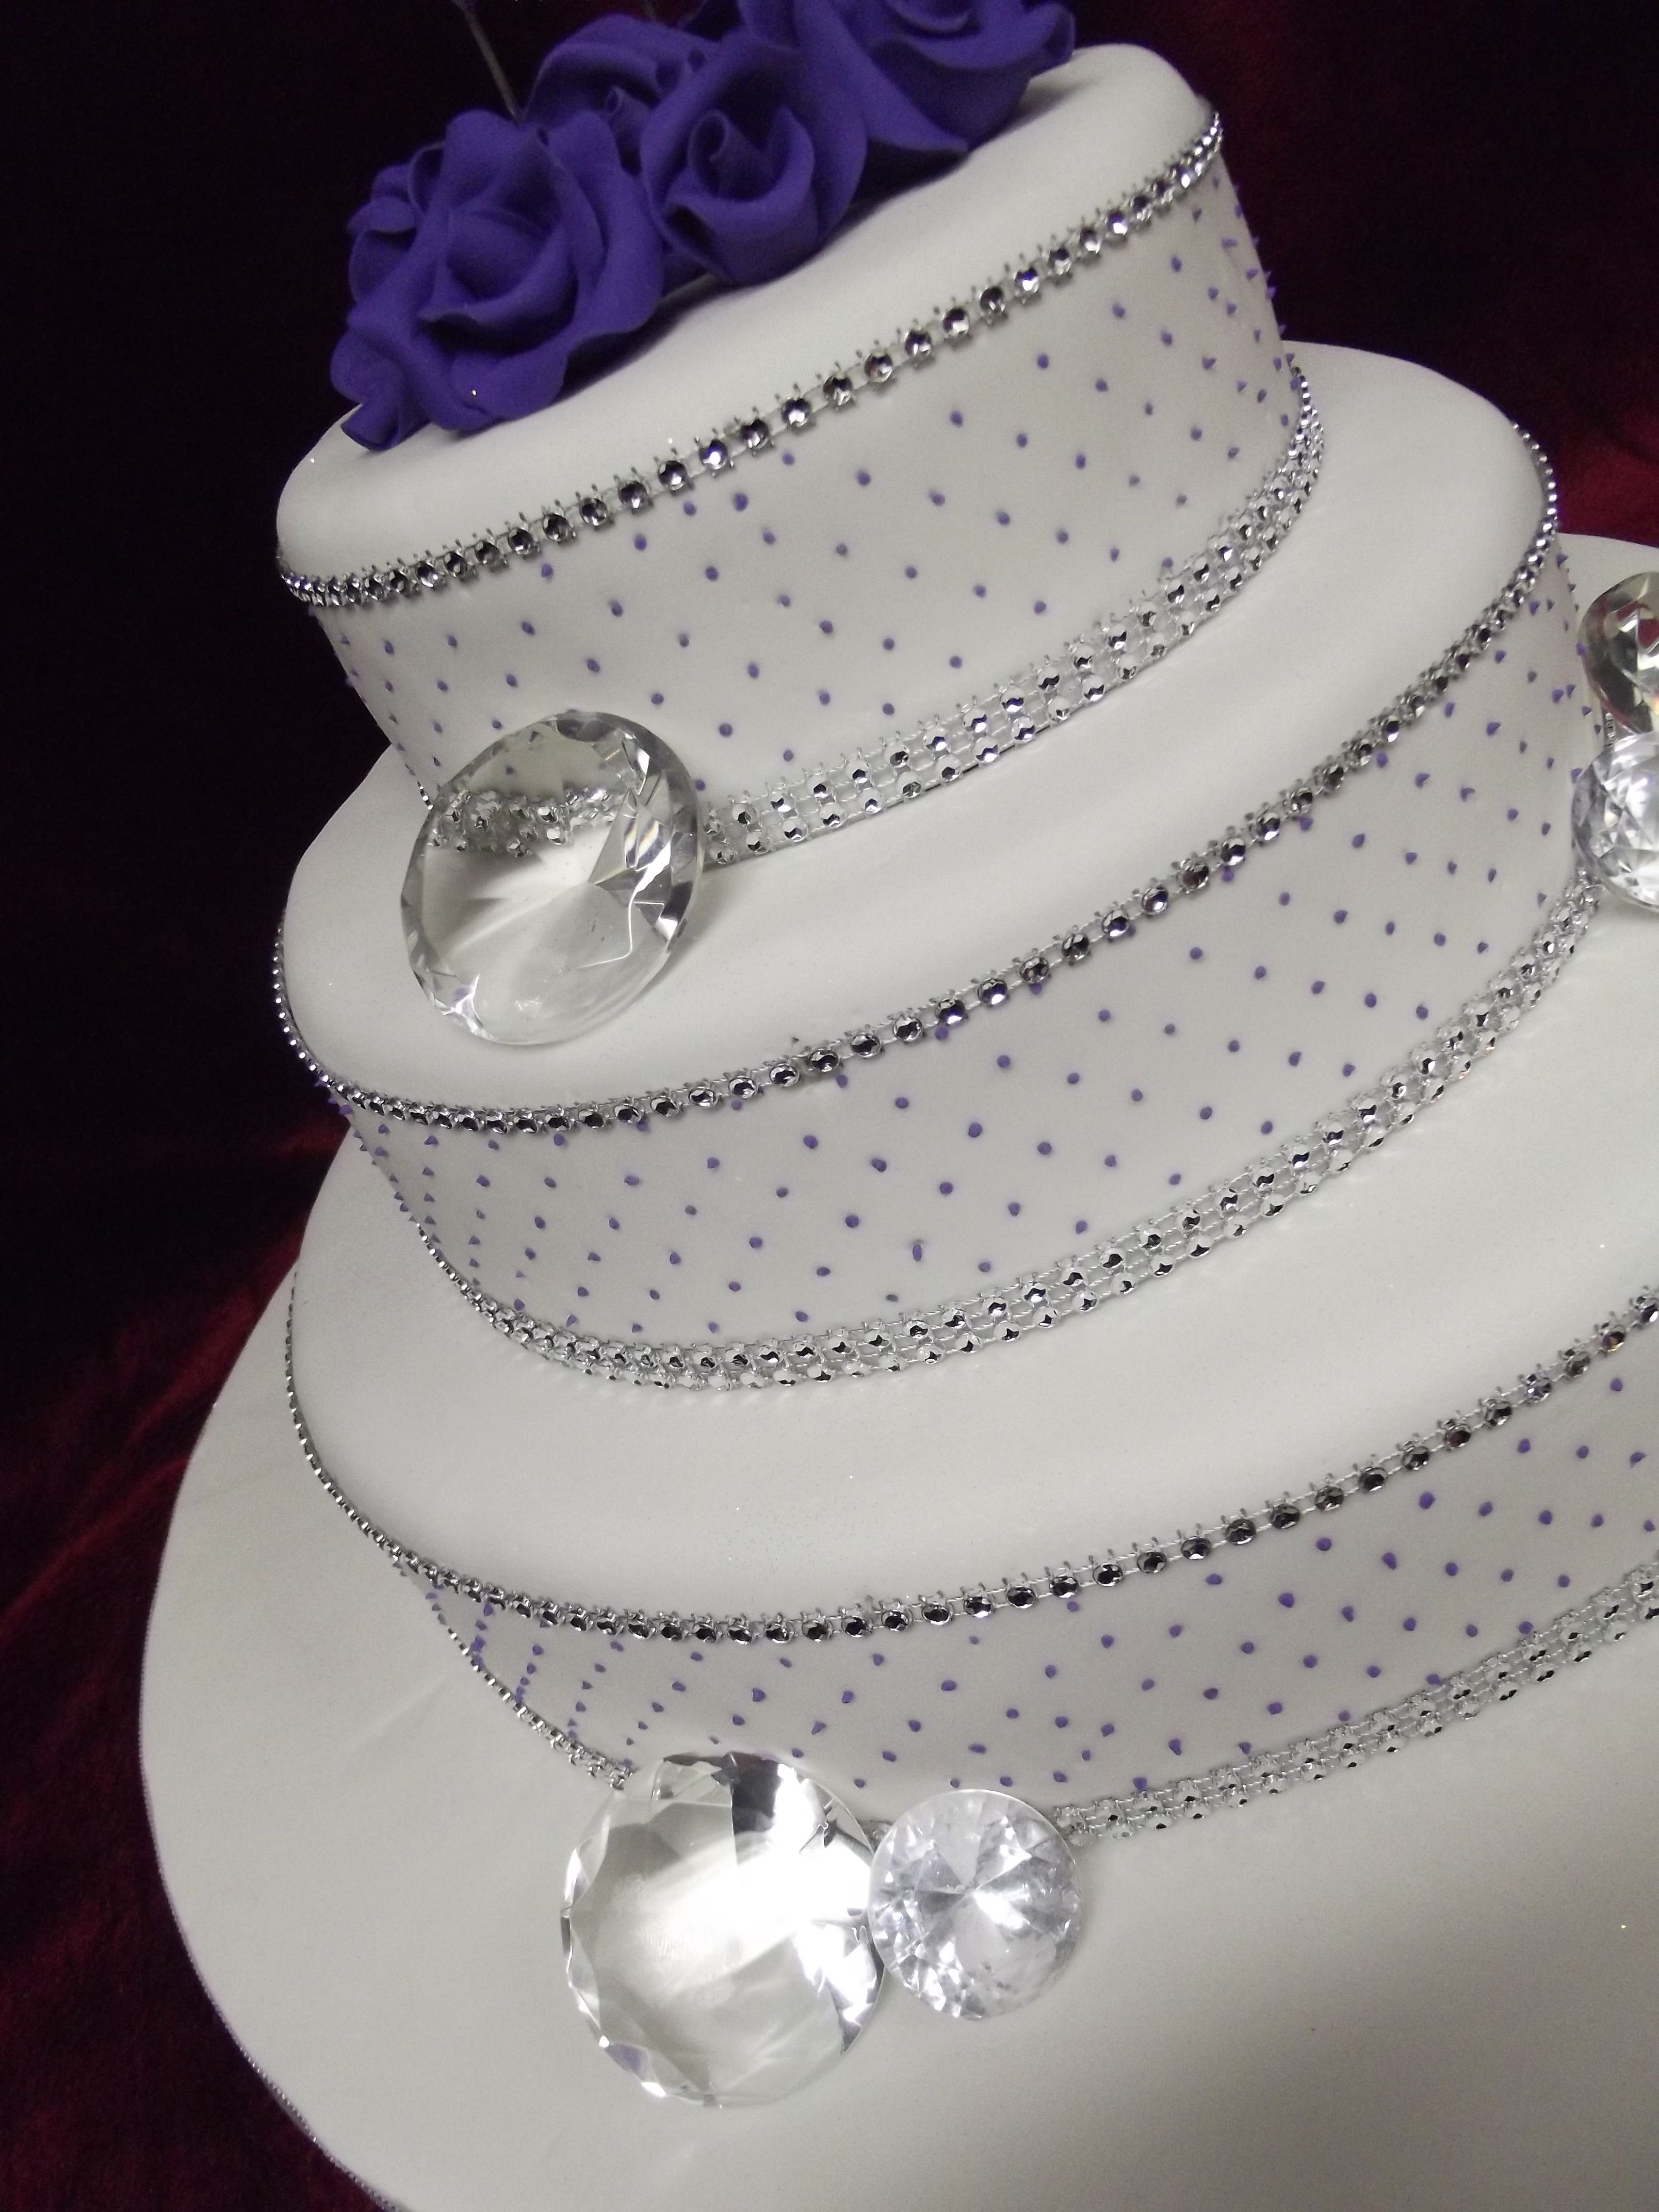 Diamond Themed Wedding Cake For Aria Frescofoods Email